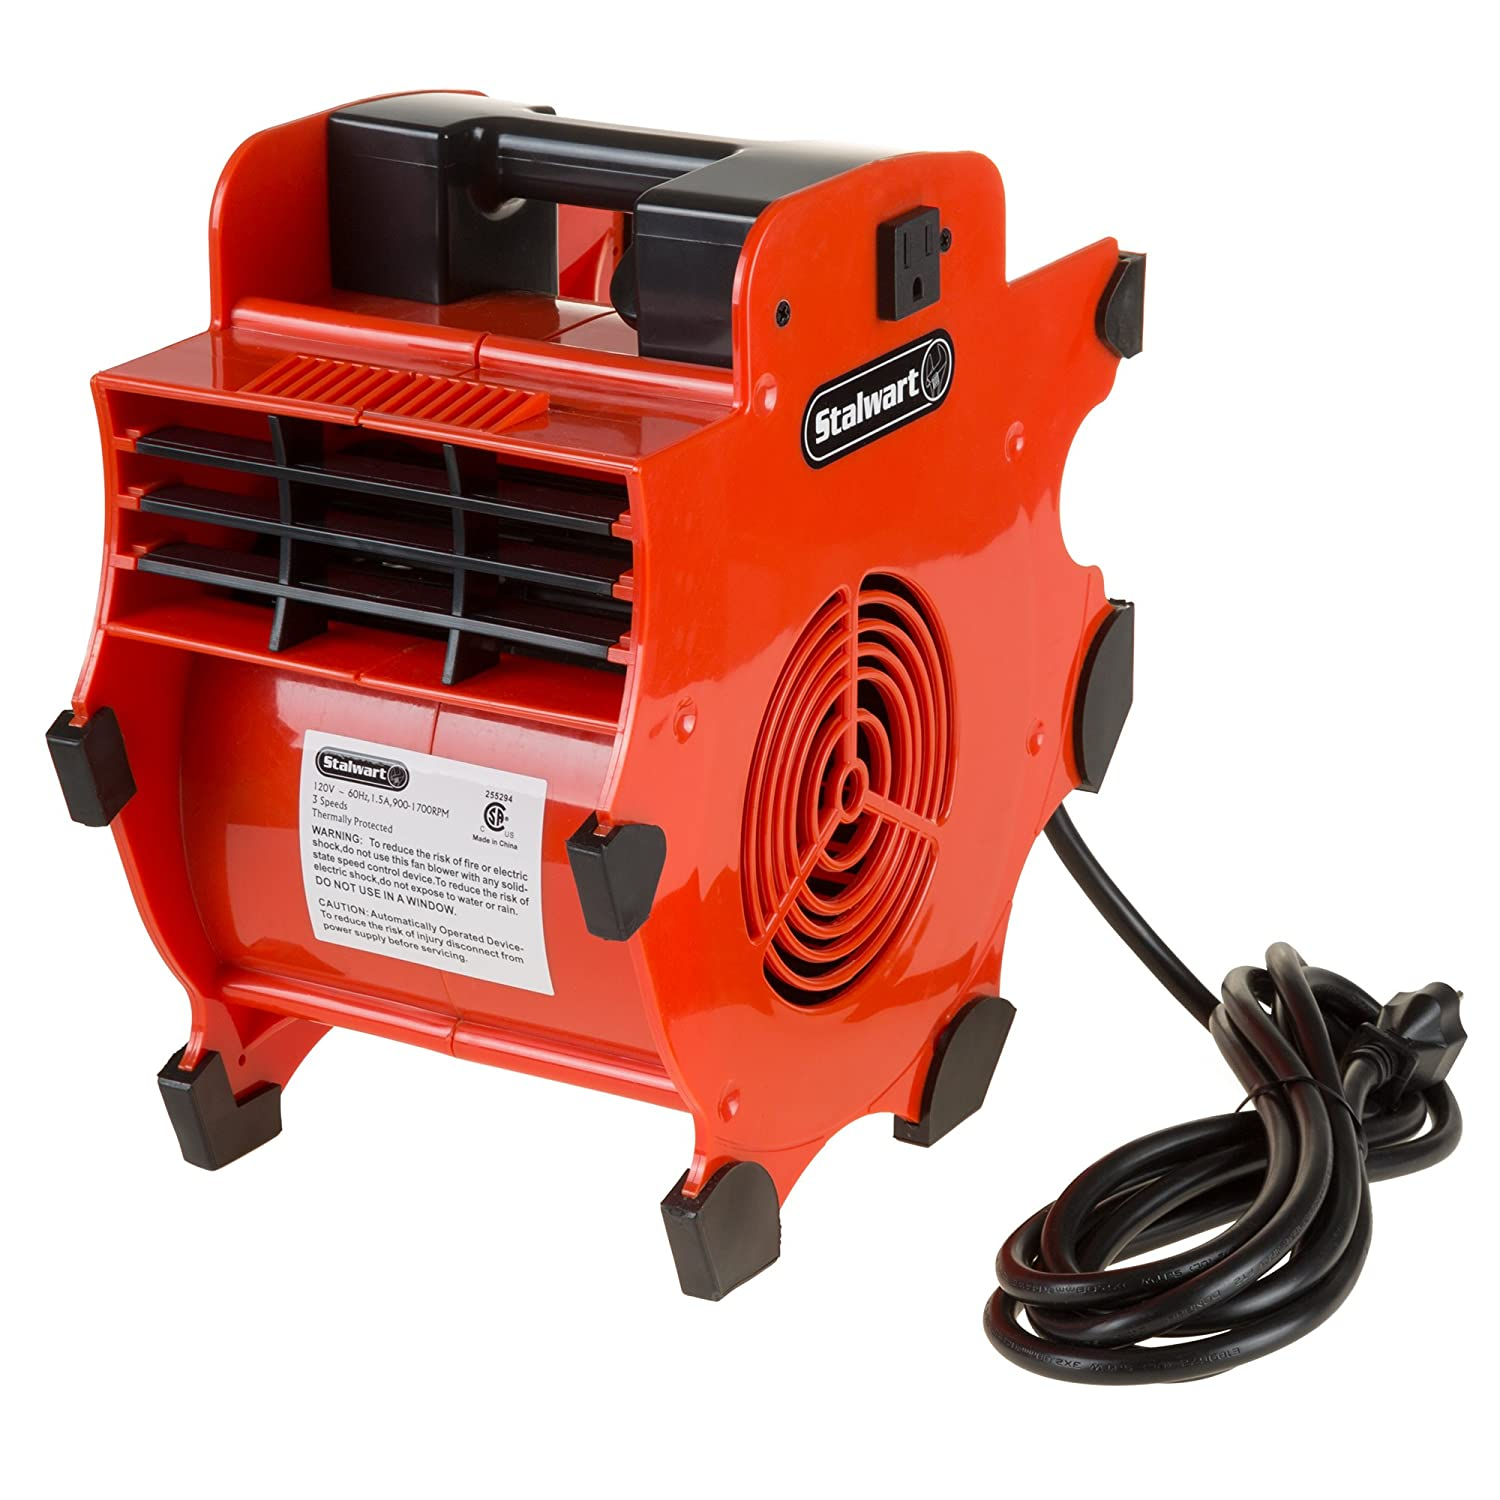 Portable Adjustable Industrial Fan Blower- 3 Speed Heavy Duty Mechanics Floor and Carpet Dryer By Stalwart Trademark Global 75-CAR1034